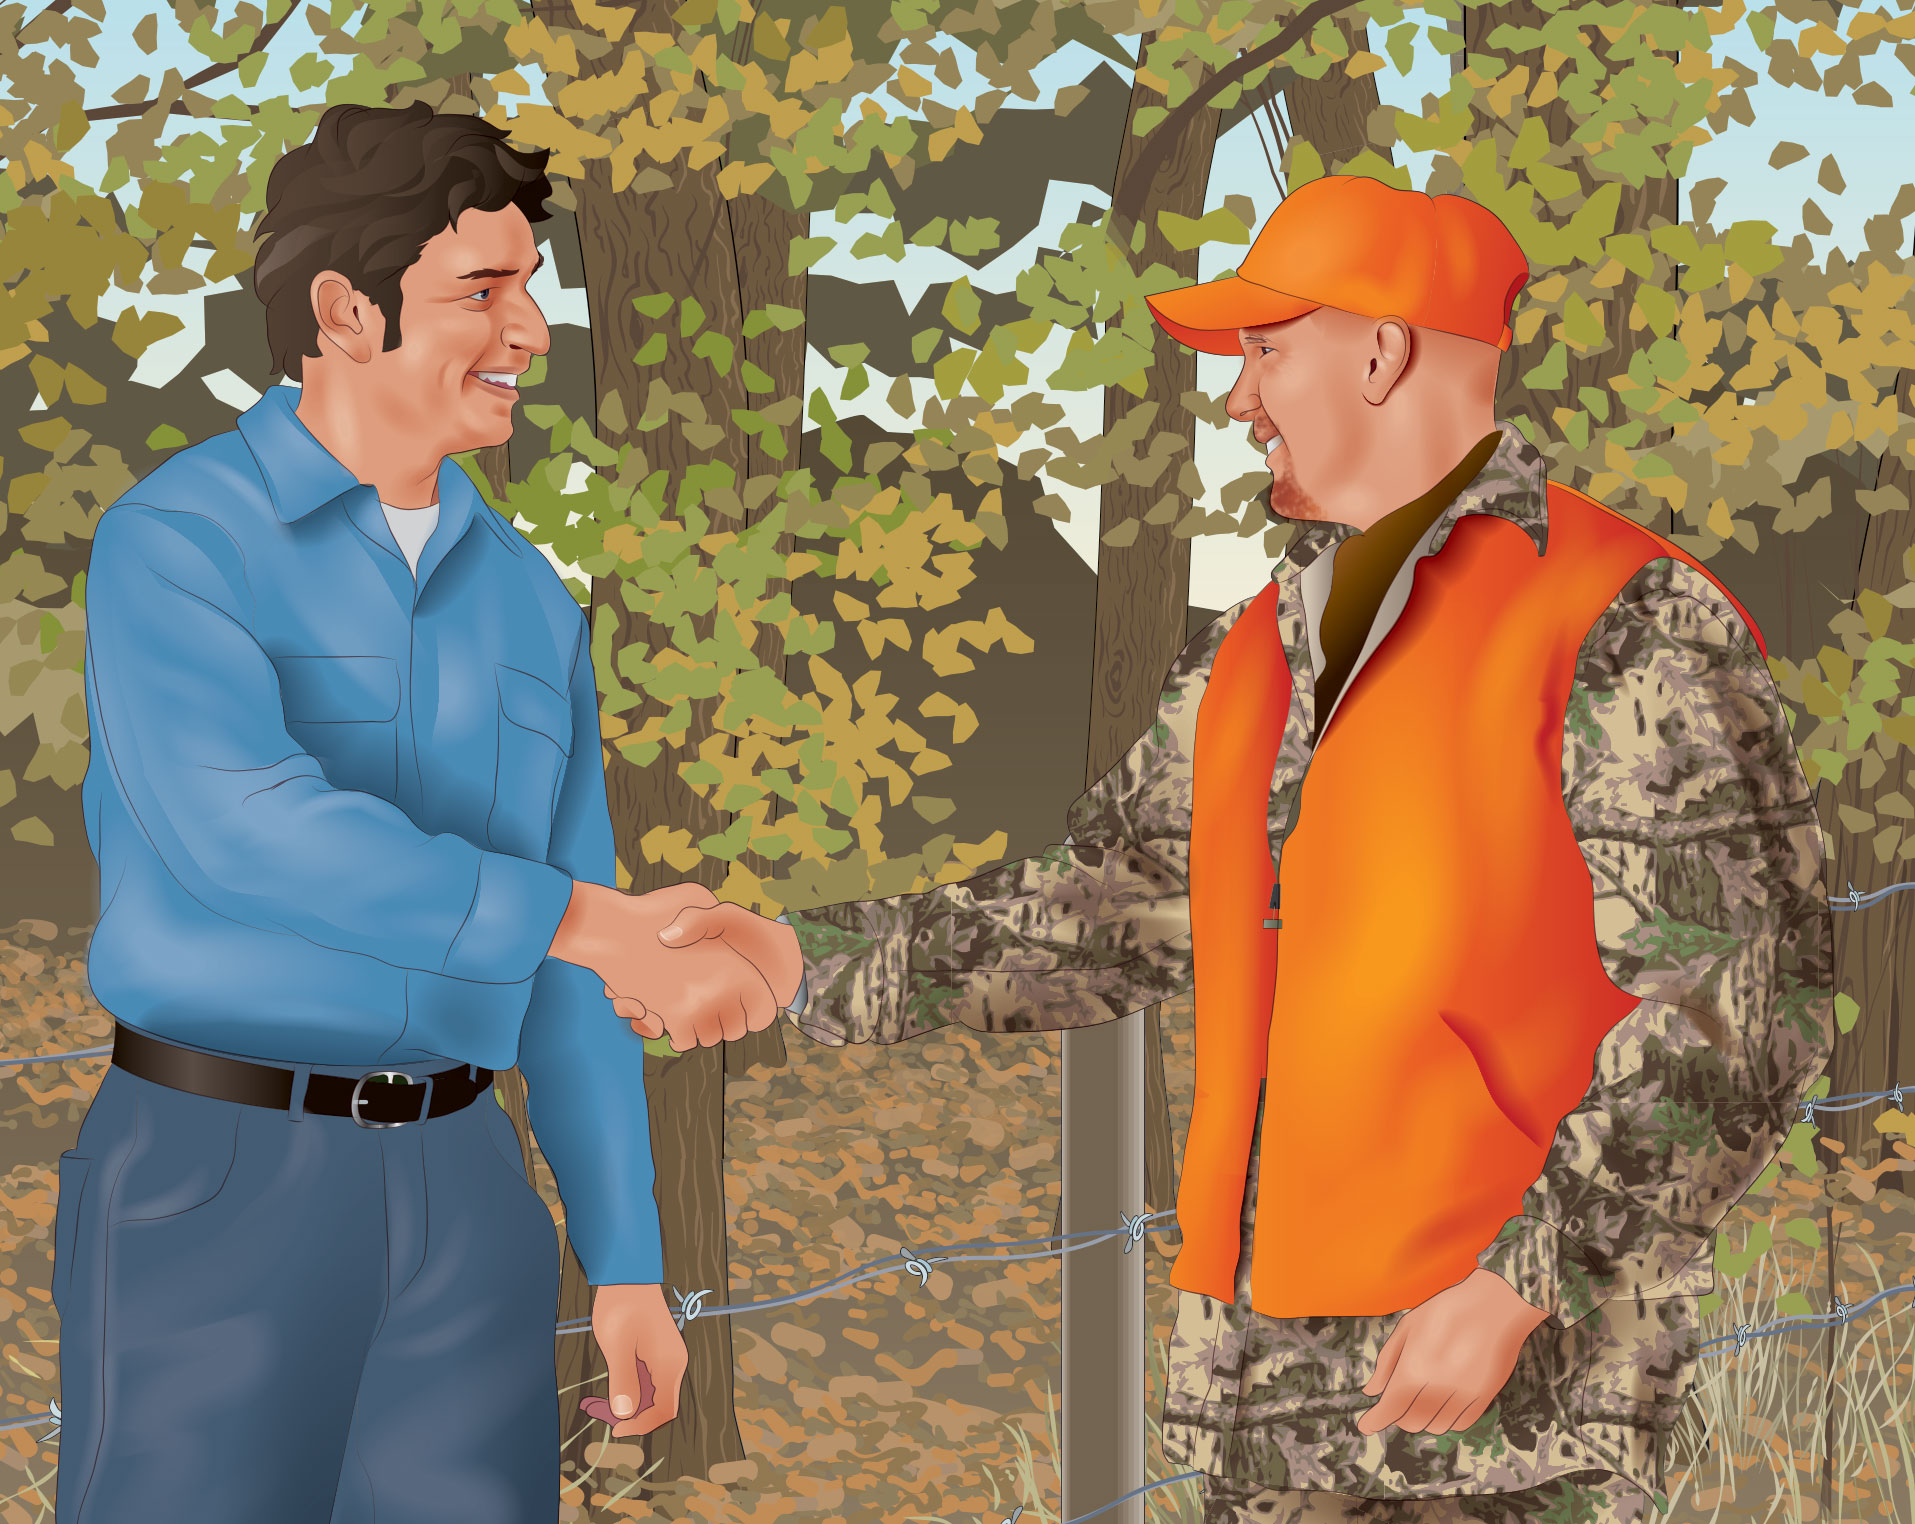 A hunter in blaze orange and a non-hunter in street clothes shaking hands